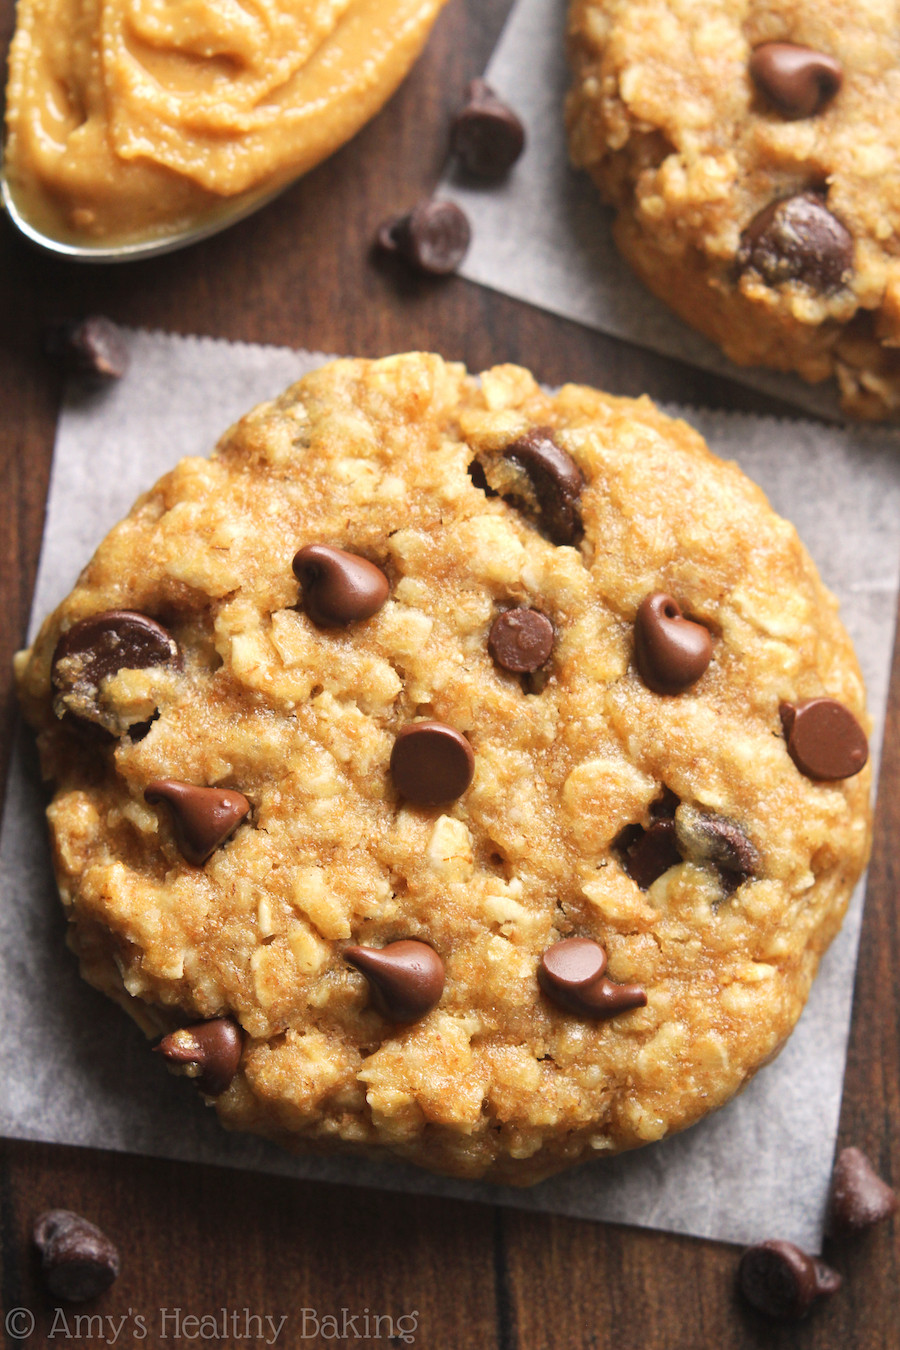 Healthy Cookies Recipe  Chocolate Chip Peanut Butter Oatmeal Cookies Recipe Video